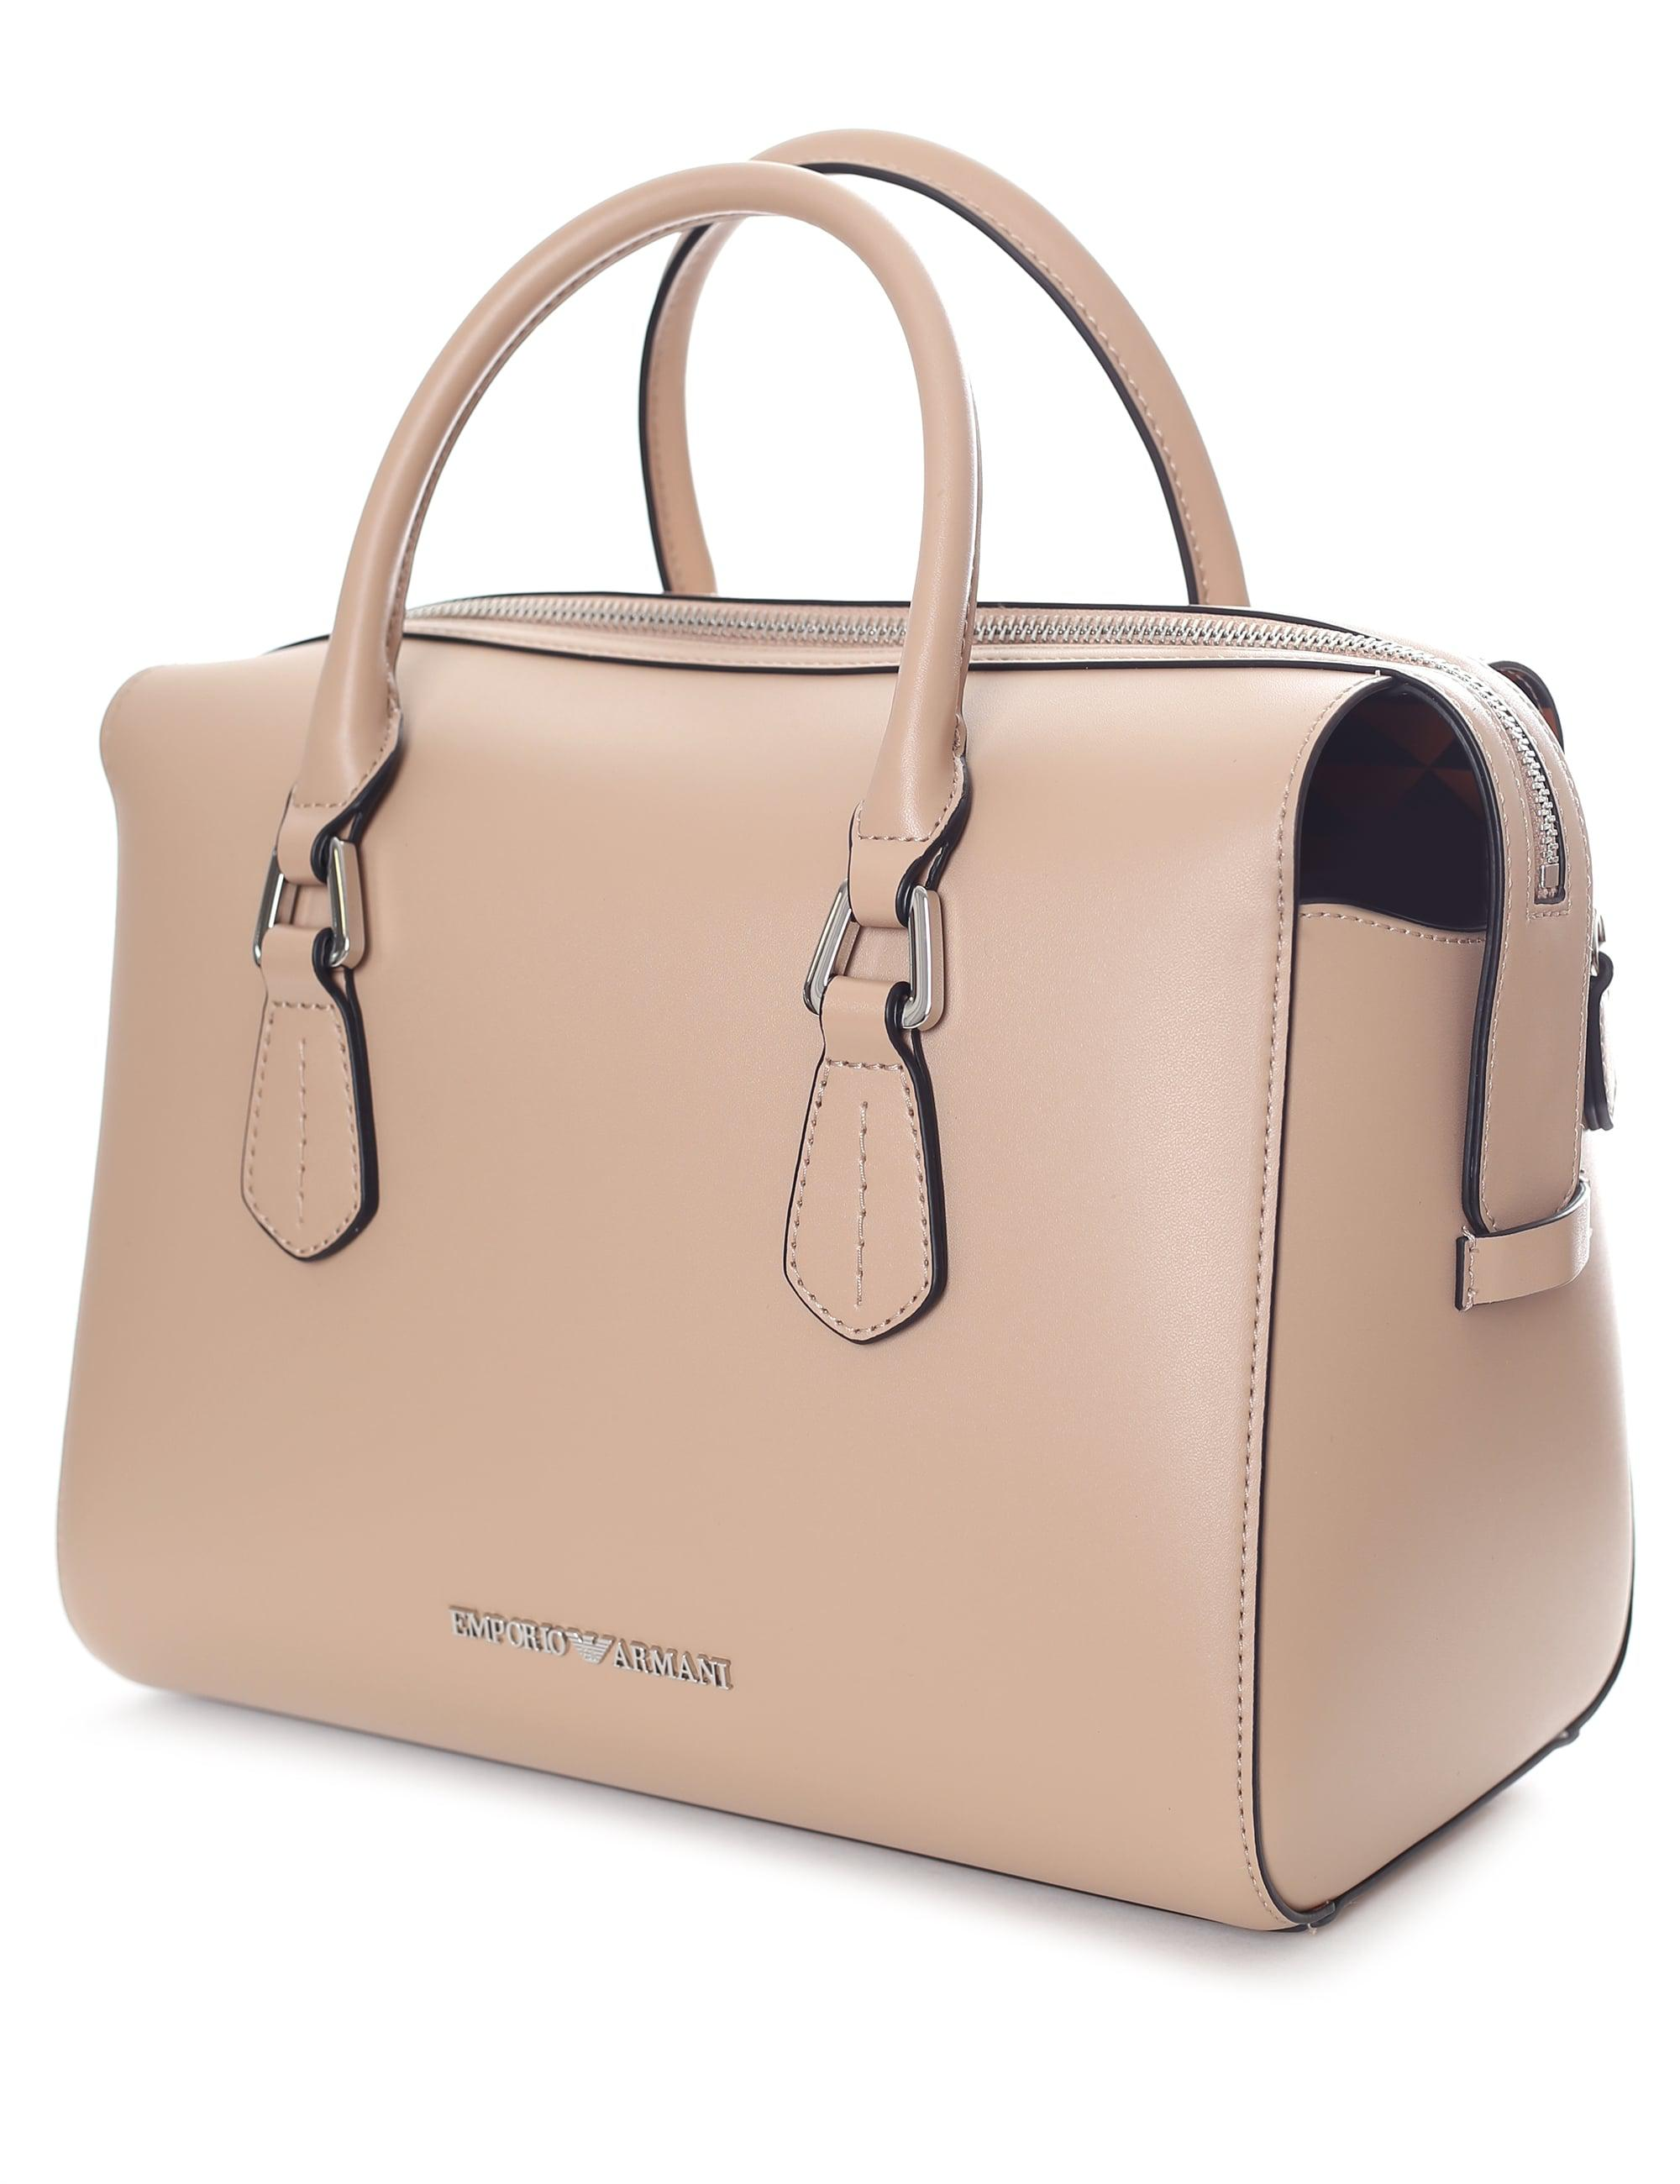 5e3c86ba1f4d Emporio Armani Wilma Bowling Bag in Natural - Lyst